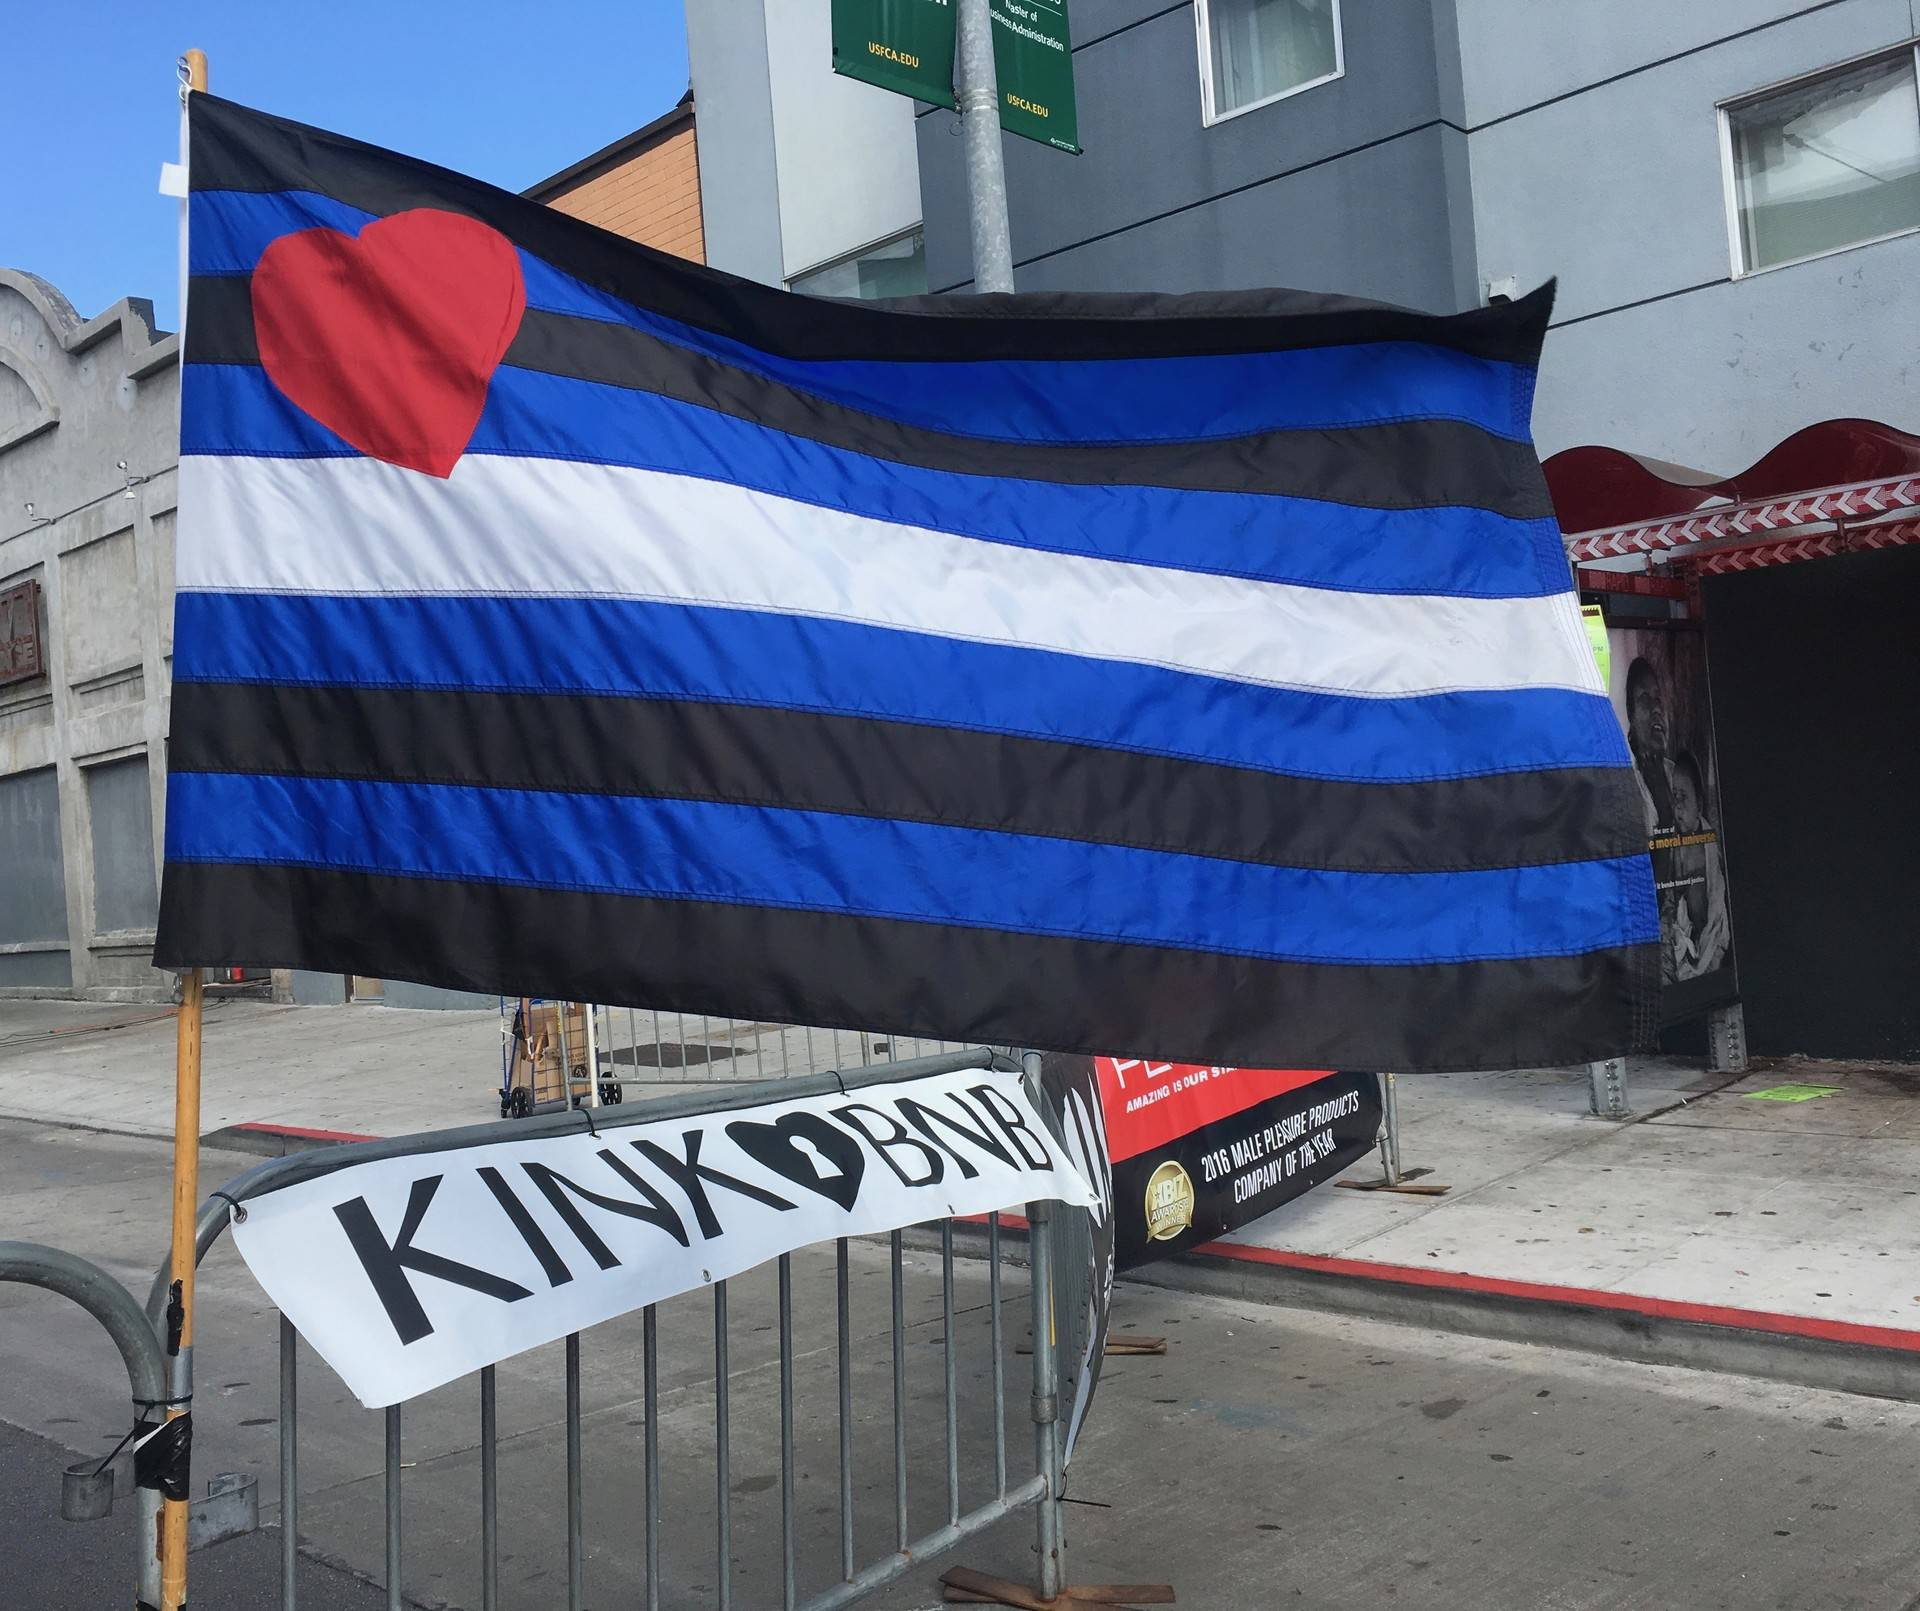 The Leather Pride flag flies at the Folsom Street Fair in San Francisco on Sept. 30, 2018. Michelle Wiley/KQED